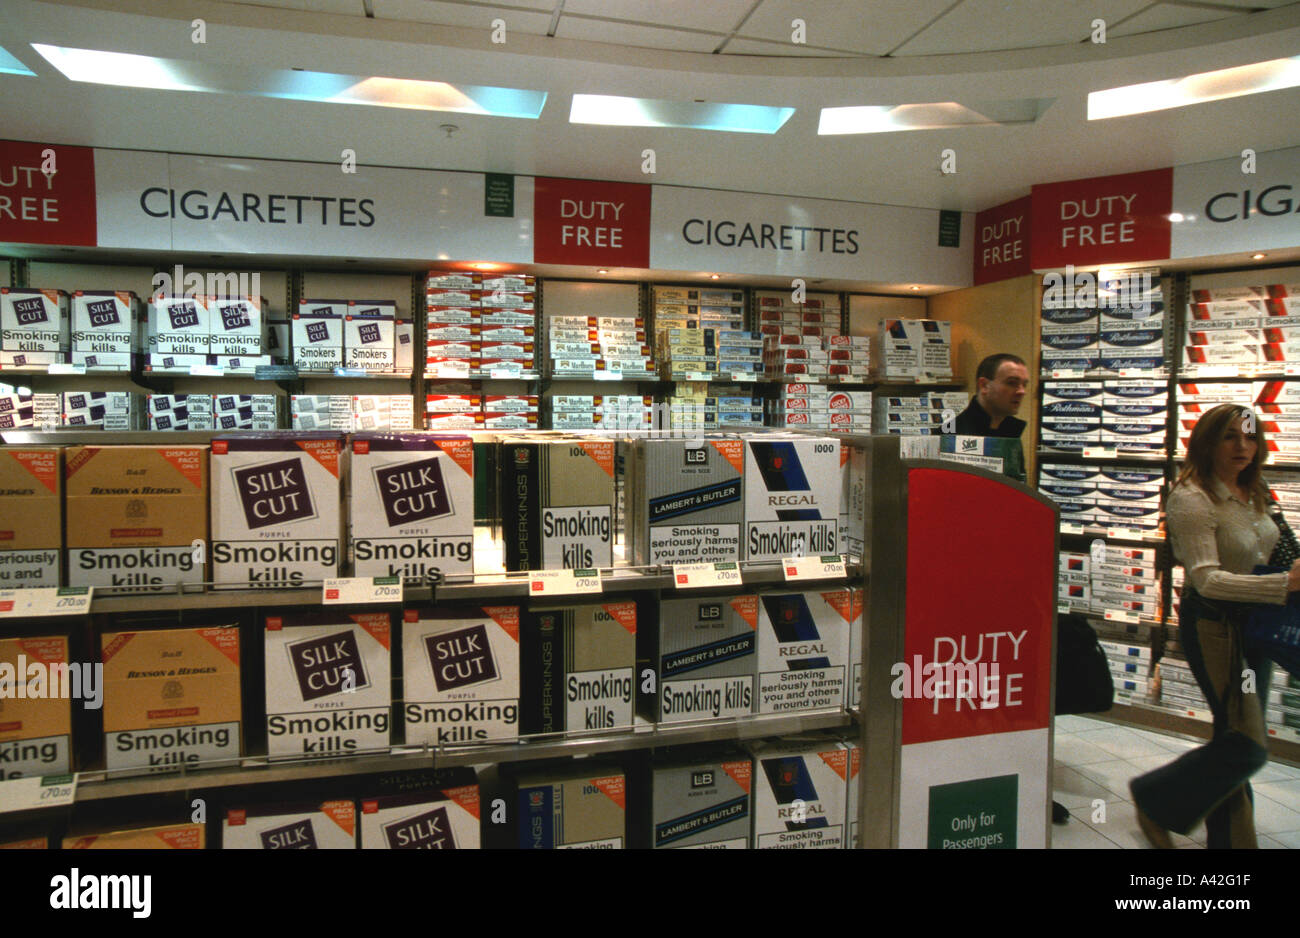 7ea59af40daf Duty free cigarettes perfume tobacco on sale air side Gatwick airport BAA  British Airports Authority London